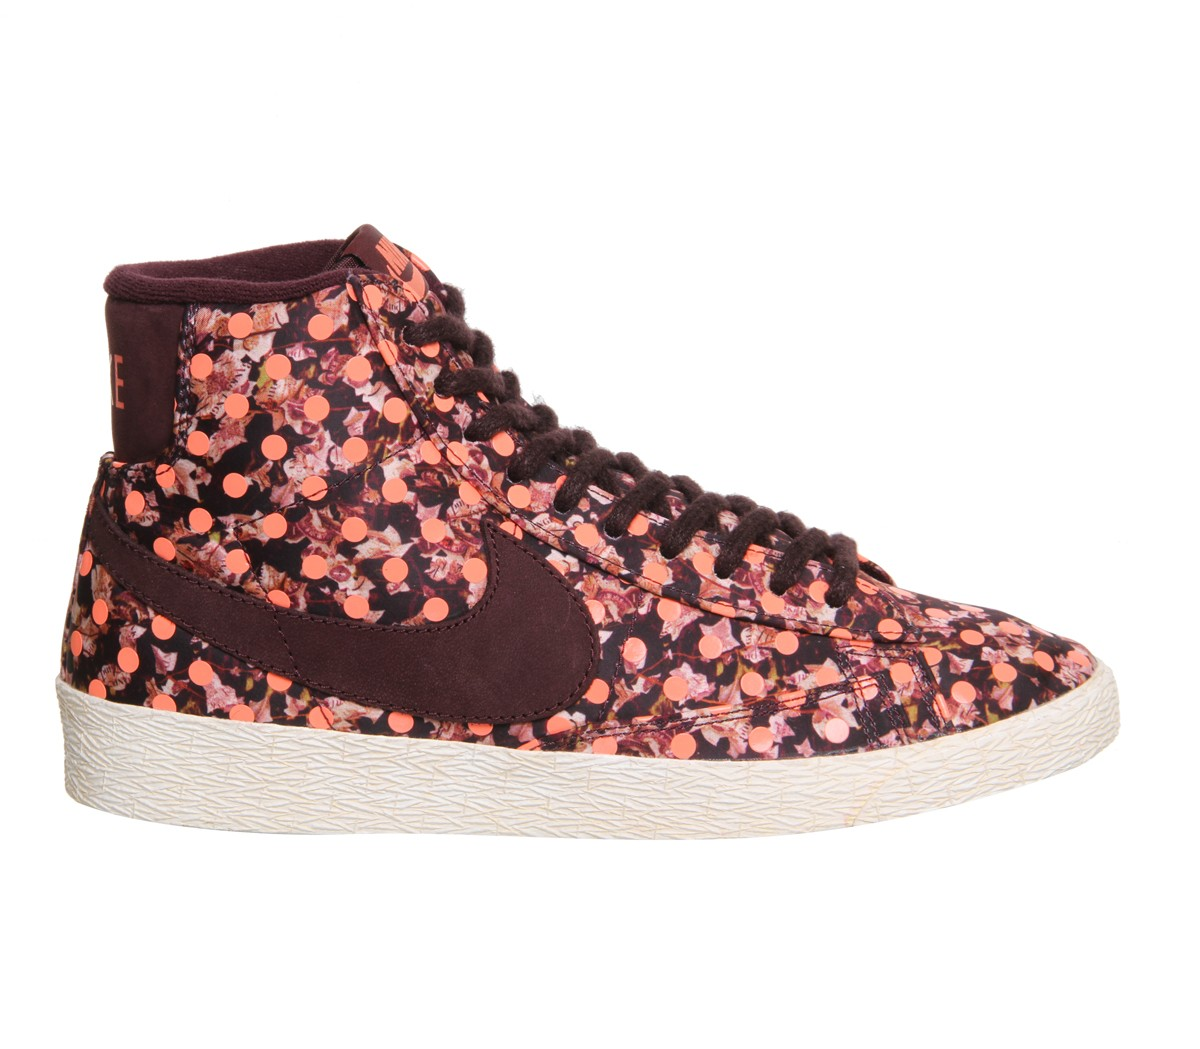 "Nike Blazer Mid Vintage Liberty Print ""Belmont Ivy Burgundy"" AW2014 Shoes Womens Deep Burgundy/Bright Mango 529037-600"